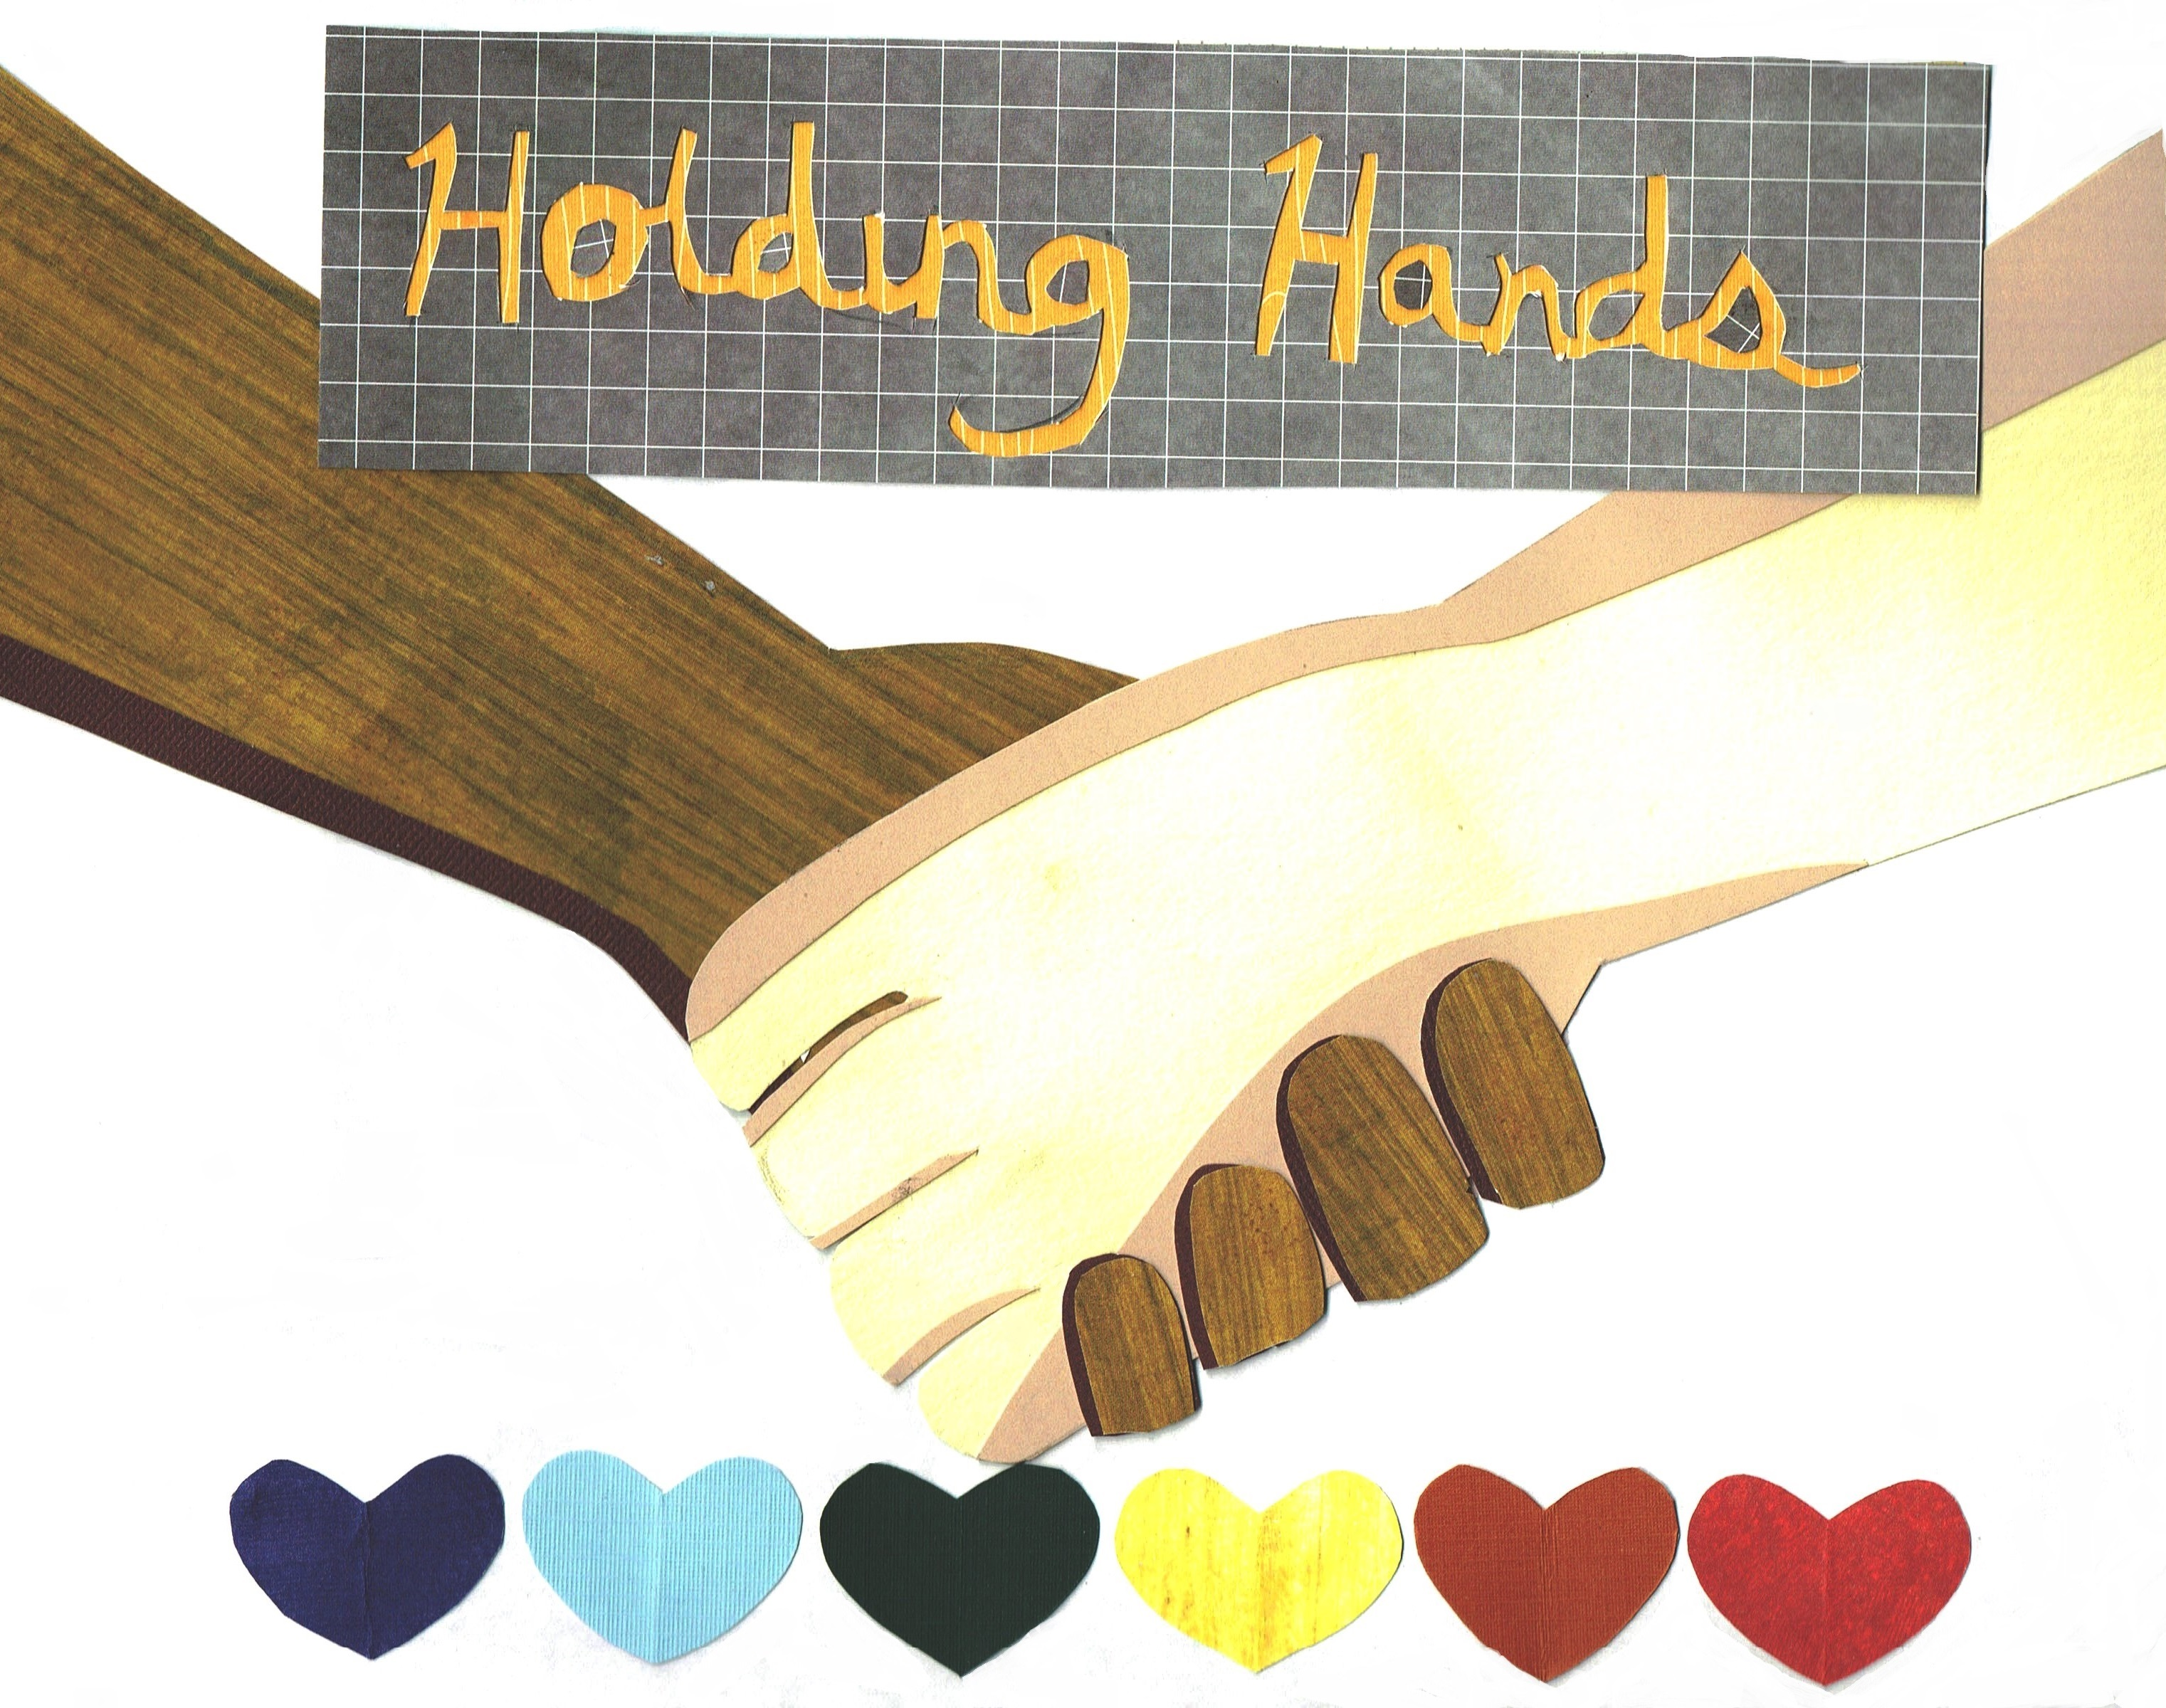 Day 31 - Holding Hands